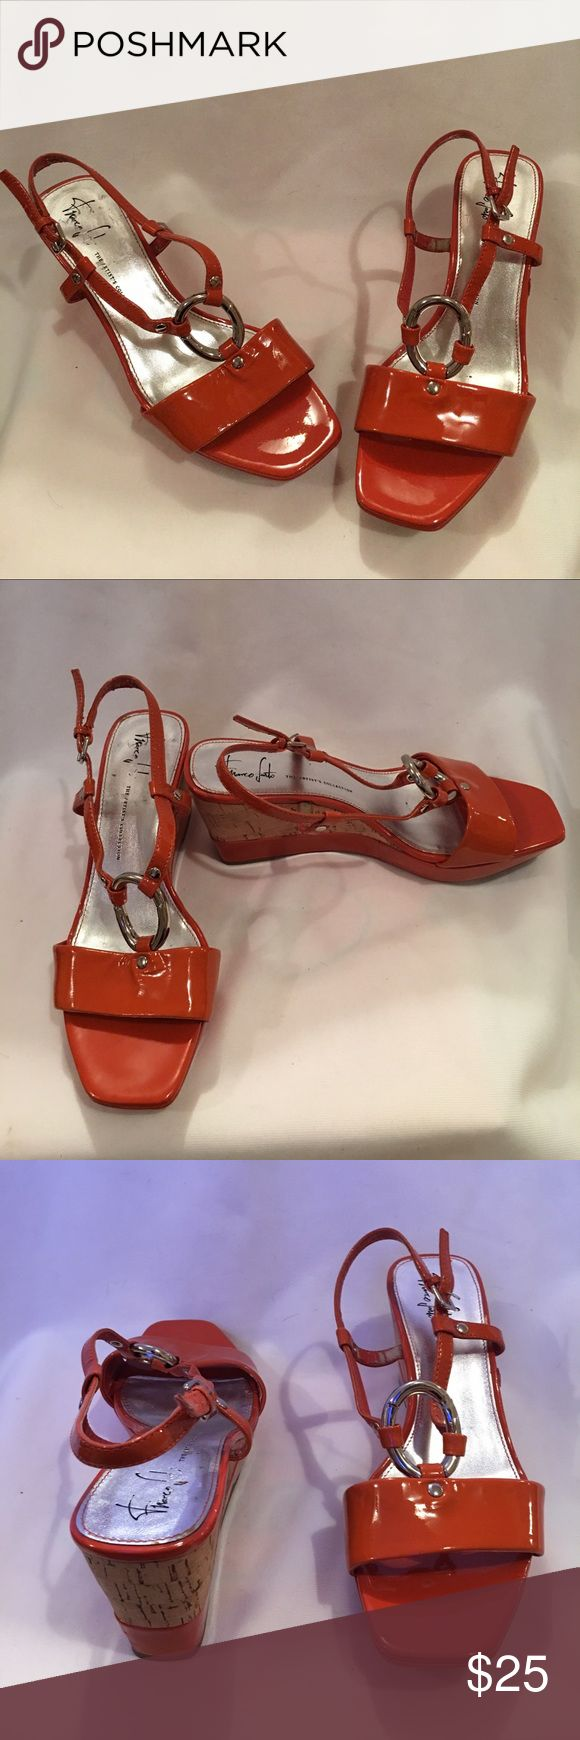 Franco Sarto orange cork wedge sandals Franco Sarto orange Patent leather cork wedge Sandals size 8 Like new condition on the outside.Some wear on the inside missing orange on inside only Franco Sarto Shoes Sandals